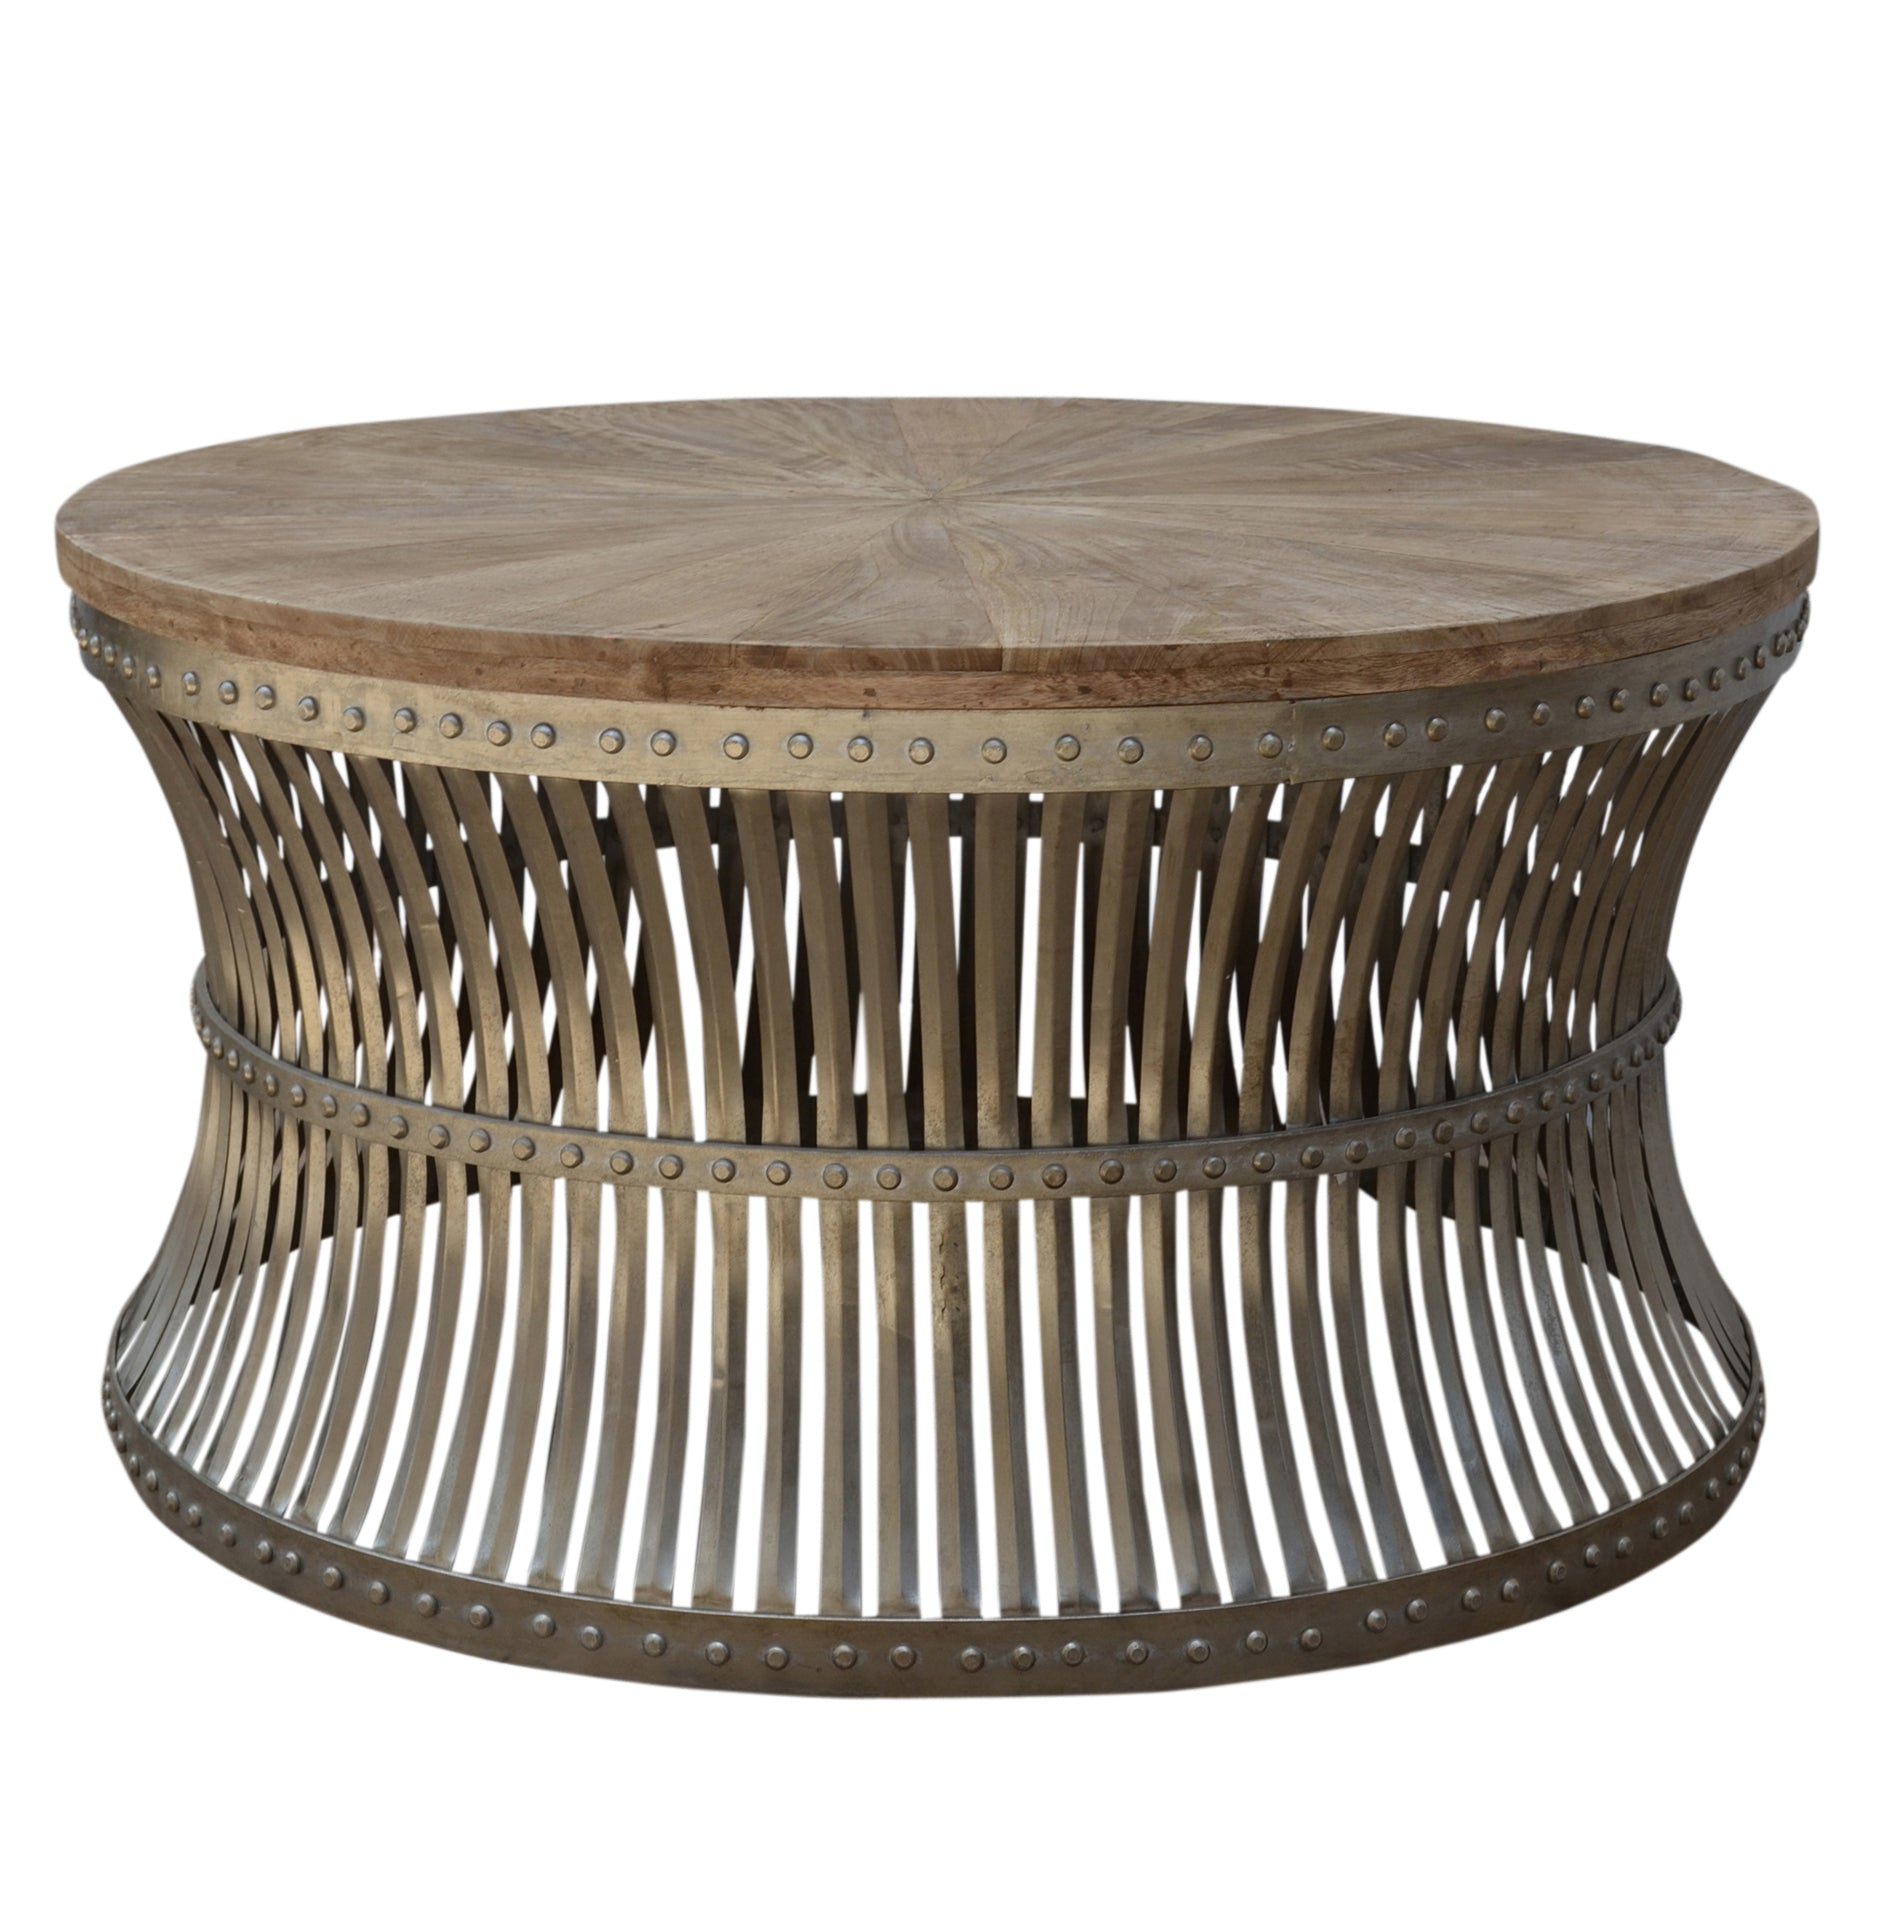 Hourglass Iron And Wood Coffee Table - decorstore